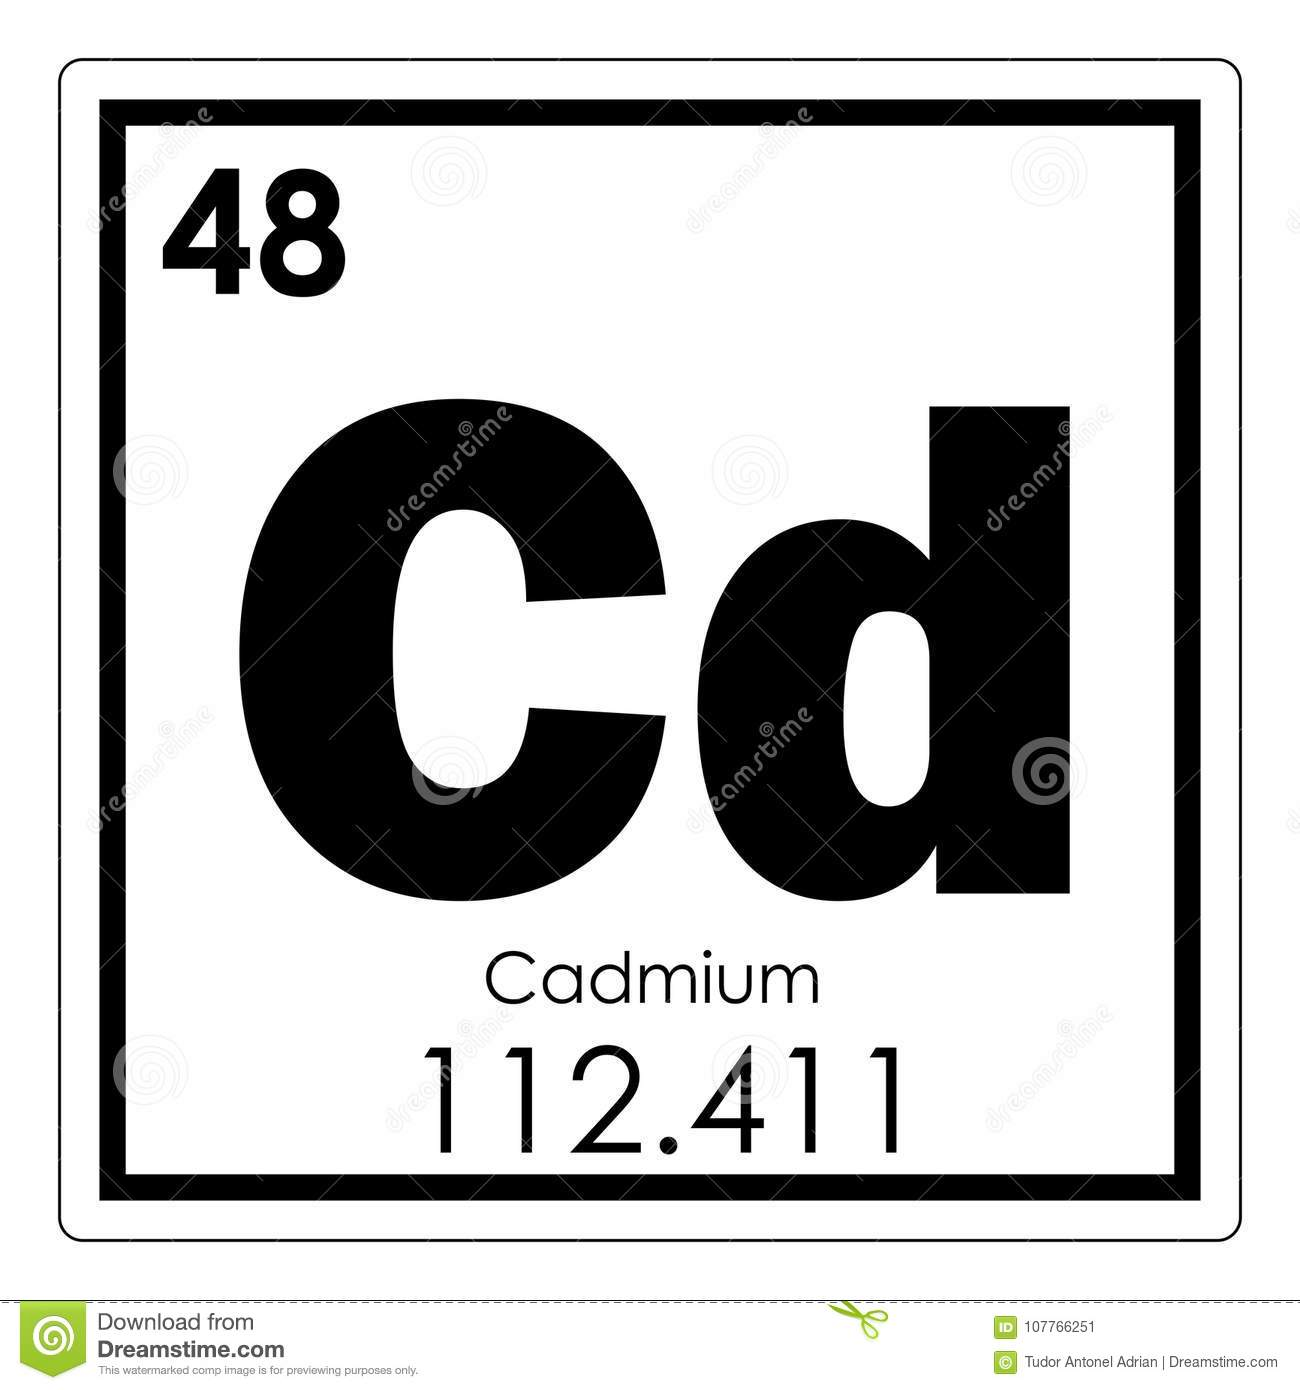 Cadmium chemical element stock illustration illustration of download cadmium chemical element stock illustration illustration of chemical 107766251 urtaz Image collections